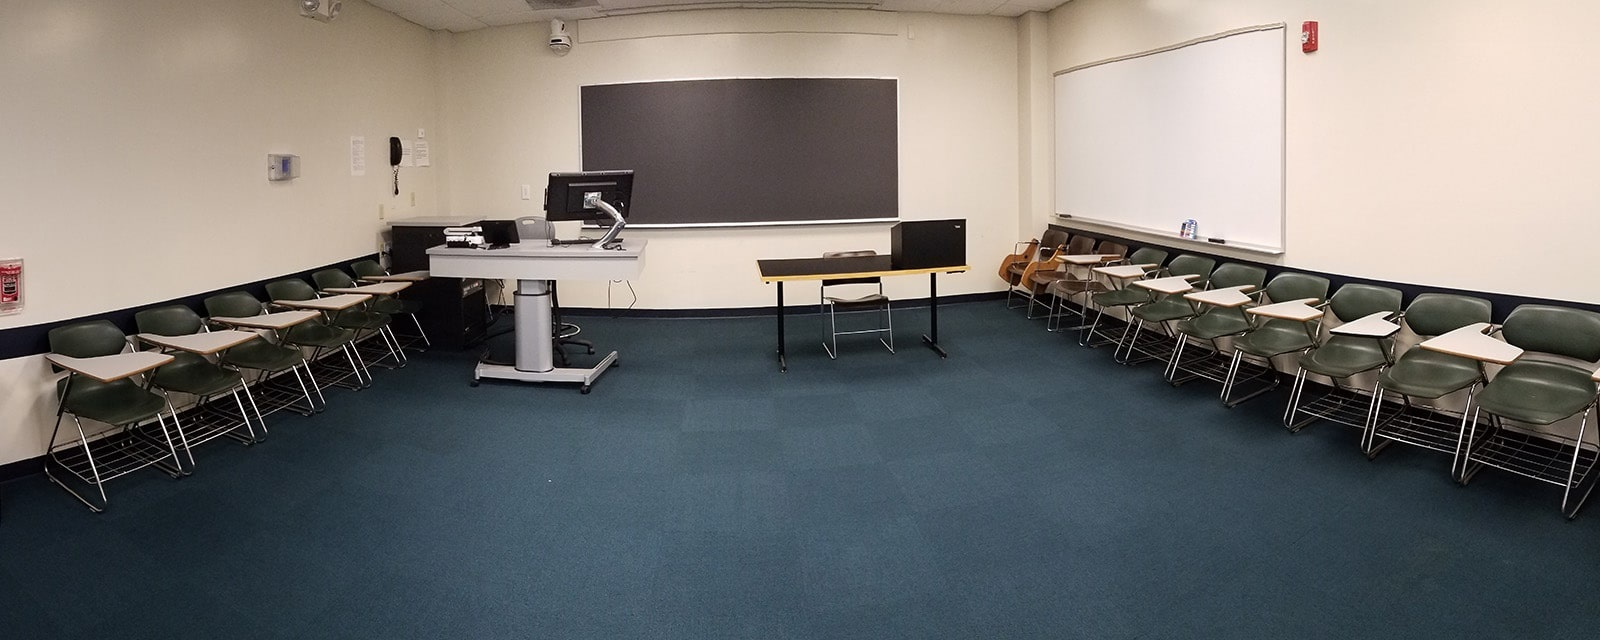 Panorama MSQ room 202A from back of room to front of room, movable chairs, teaching station front right